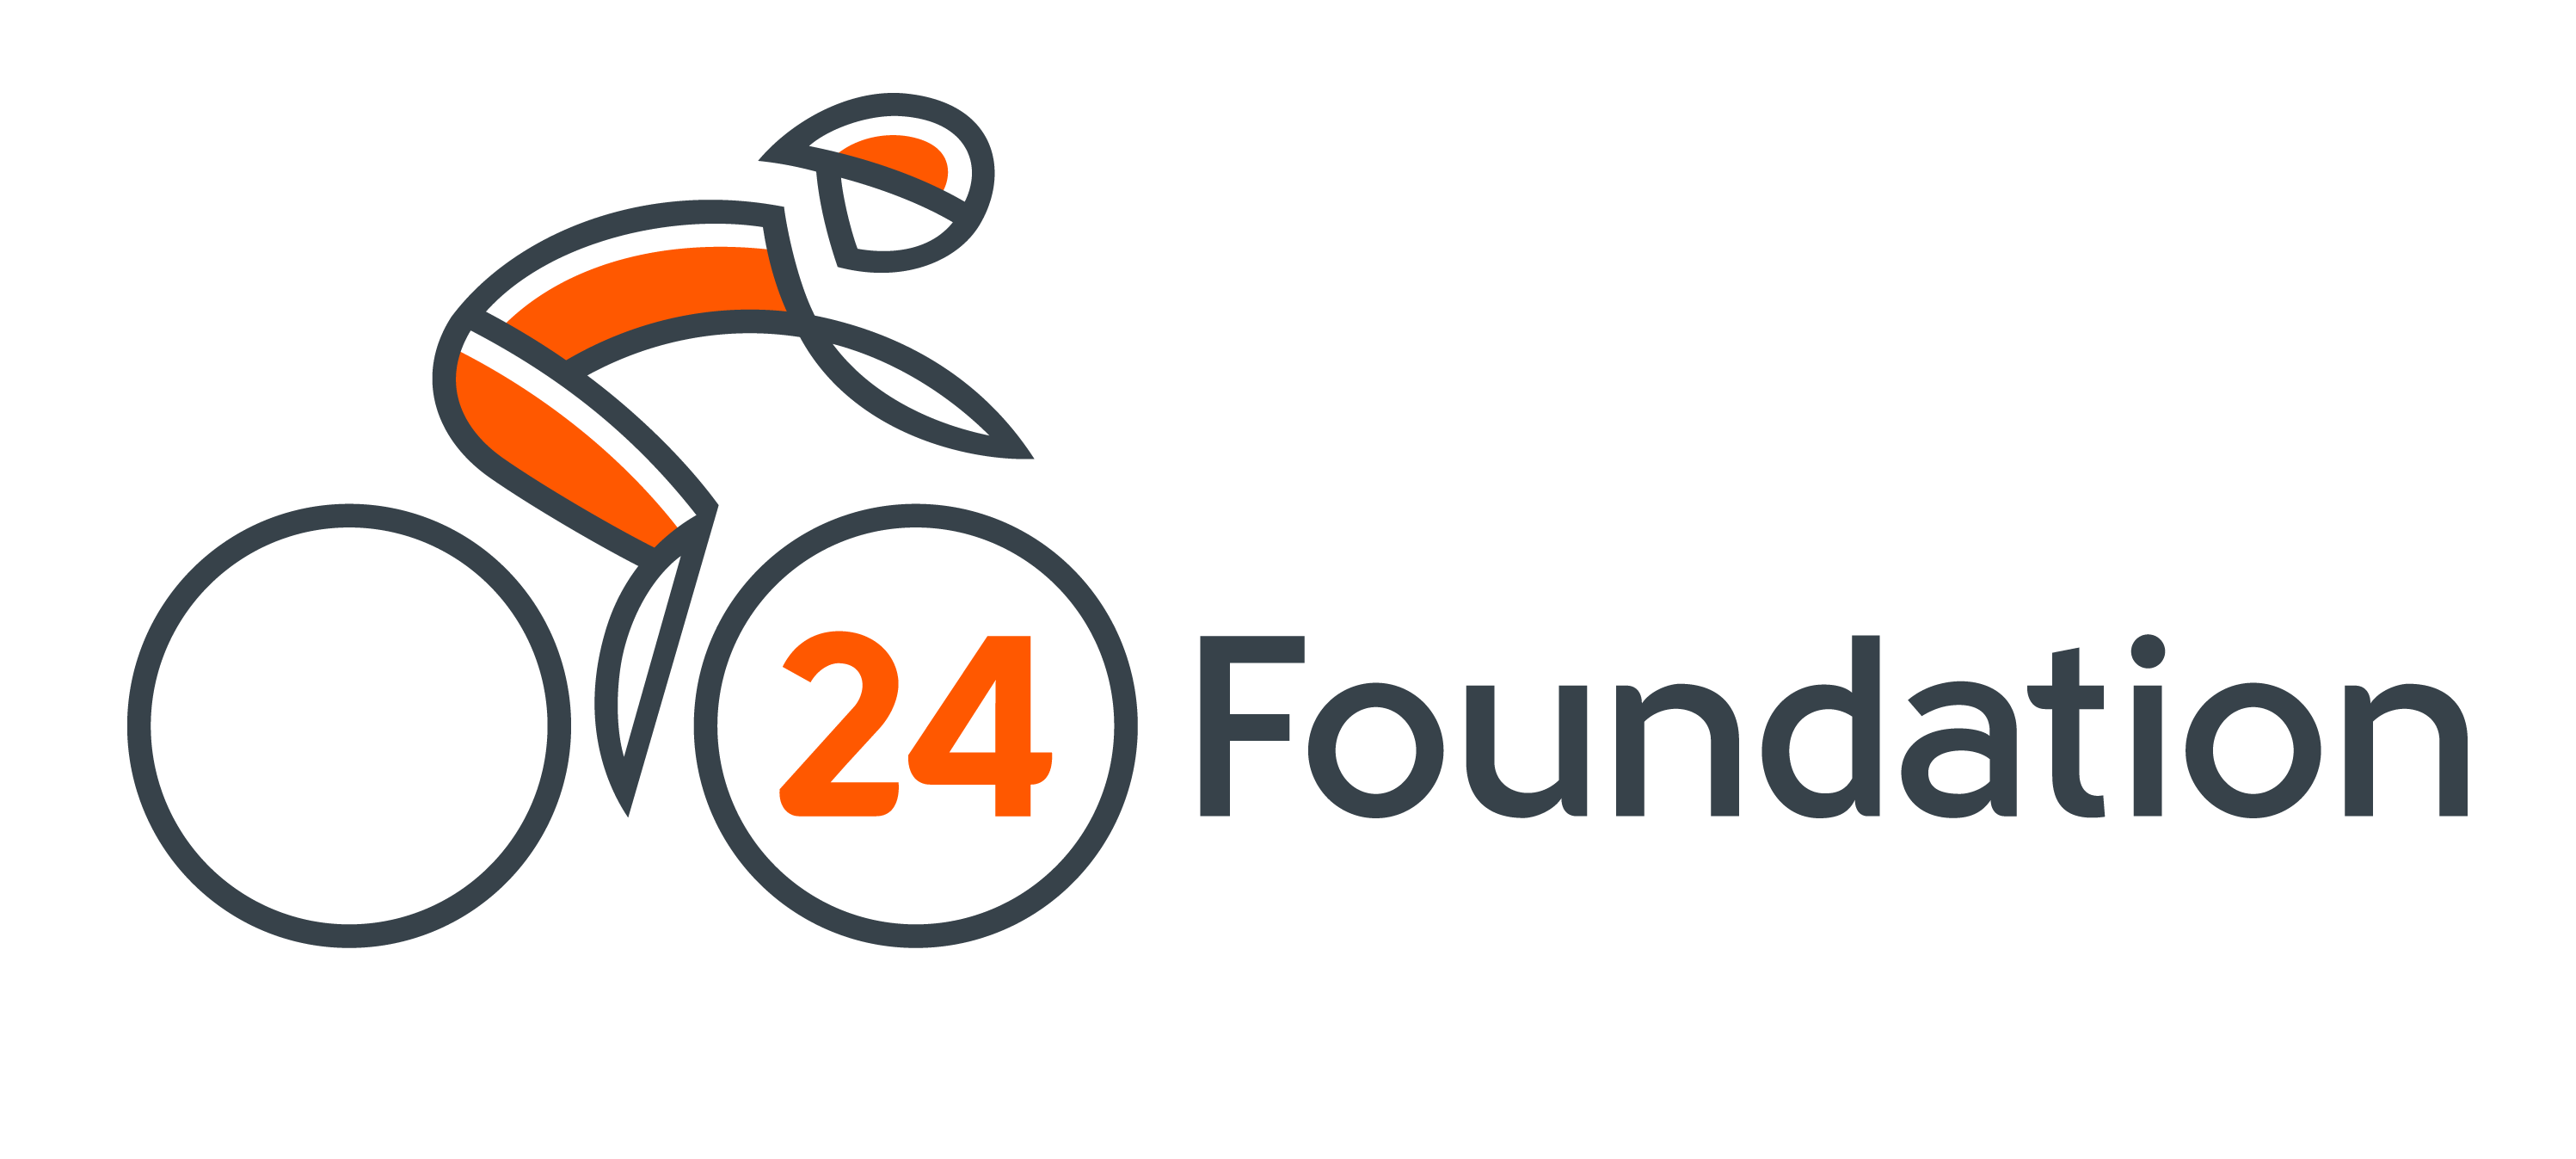 24 Foundation